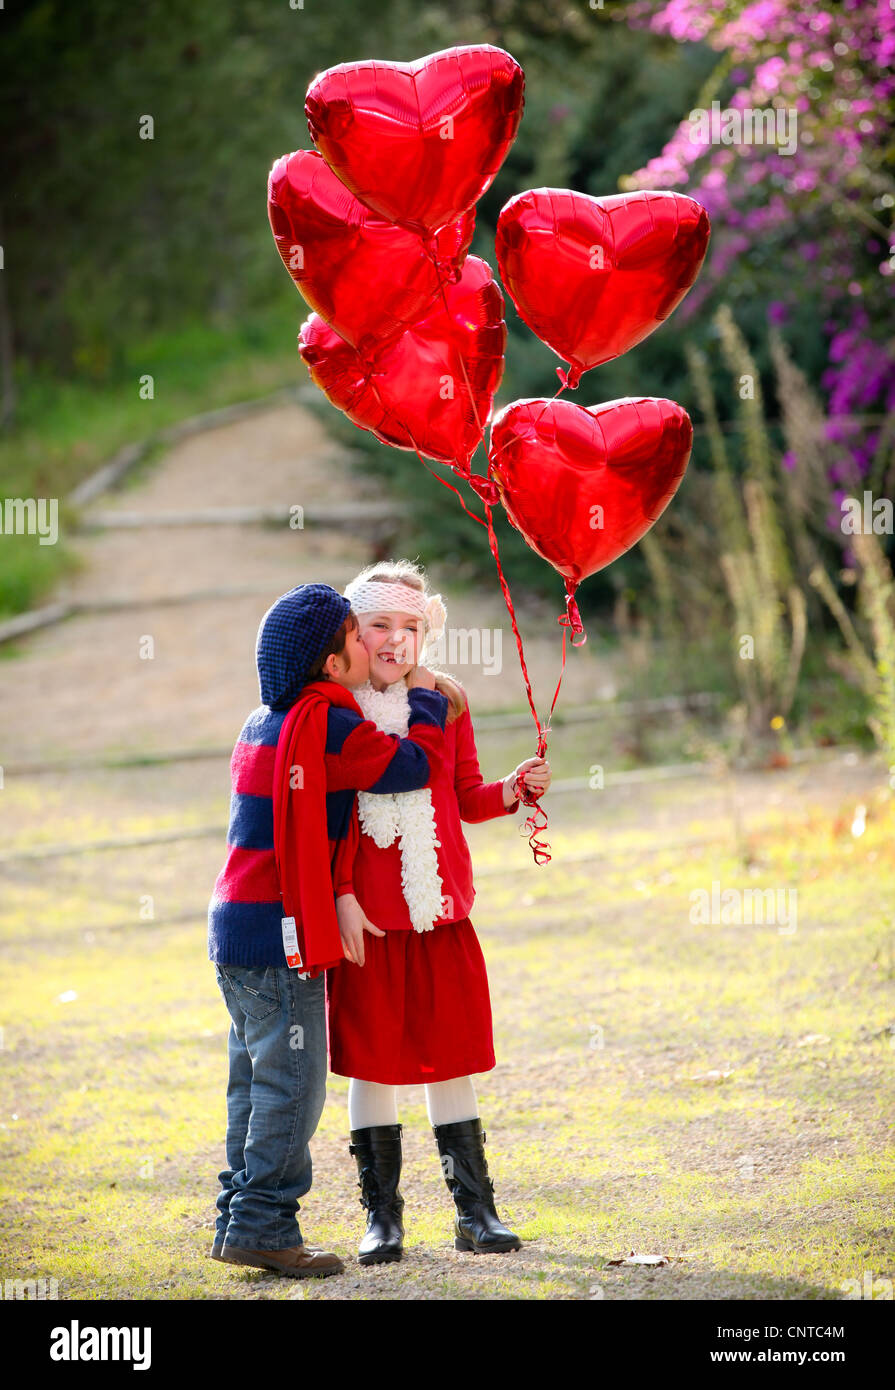 valentines kids with gift of balloons and kiss - Stock Image